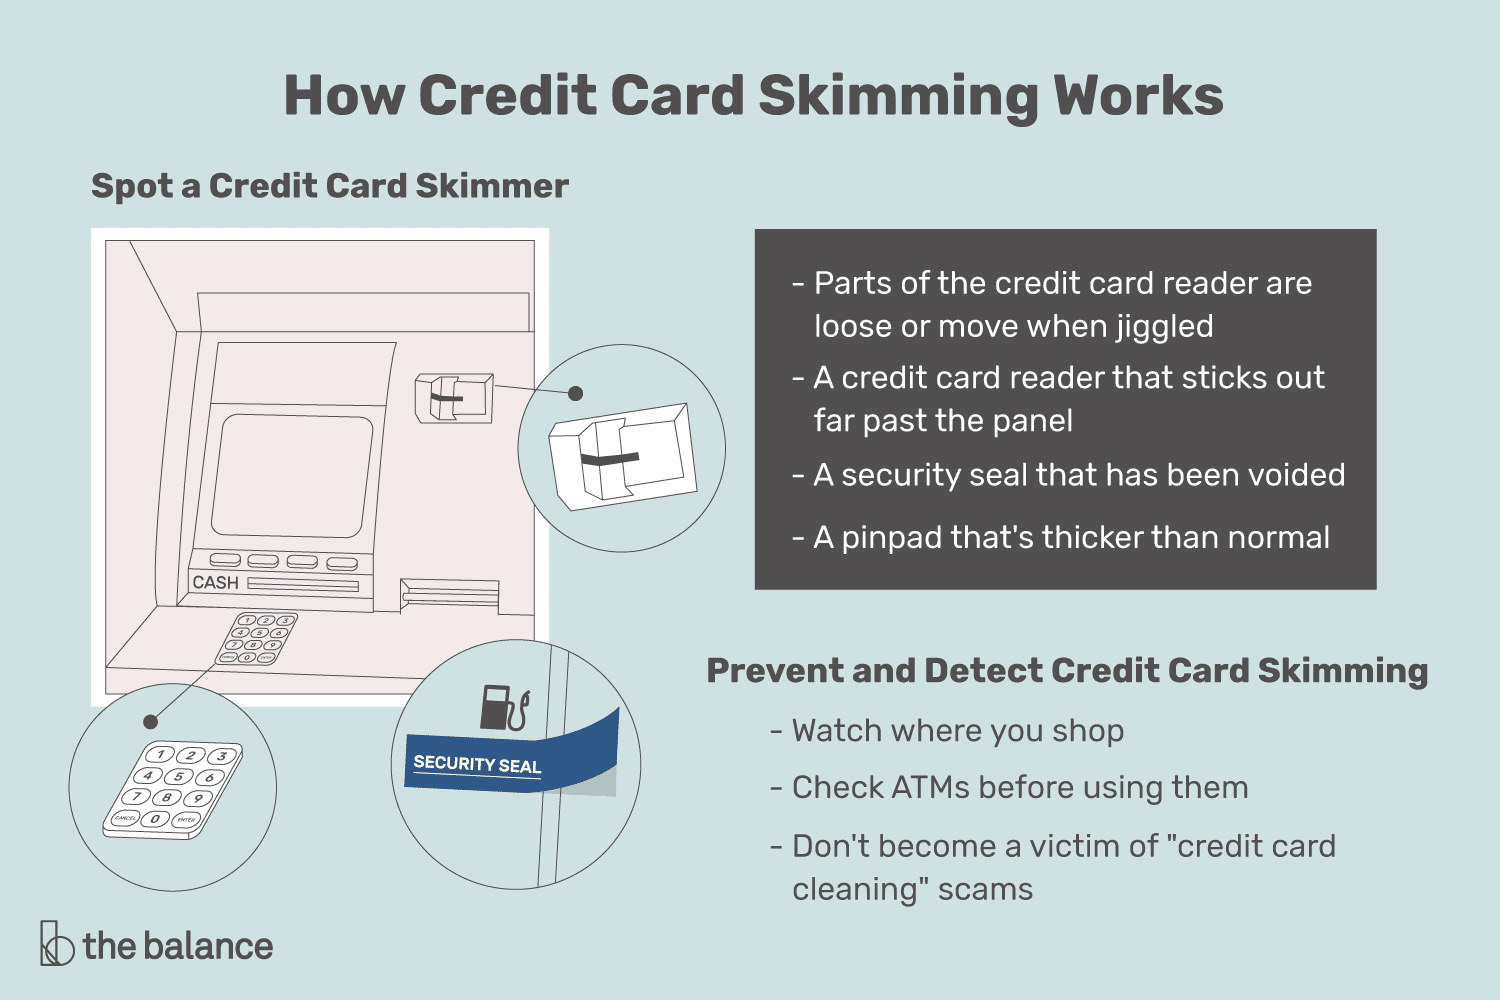 how-credit-card-skimming-works